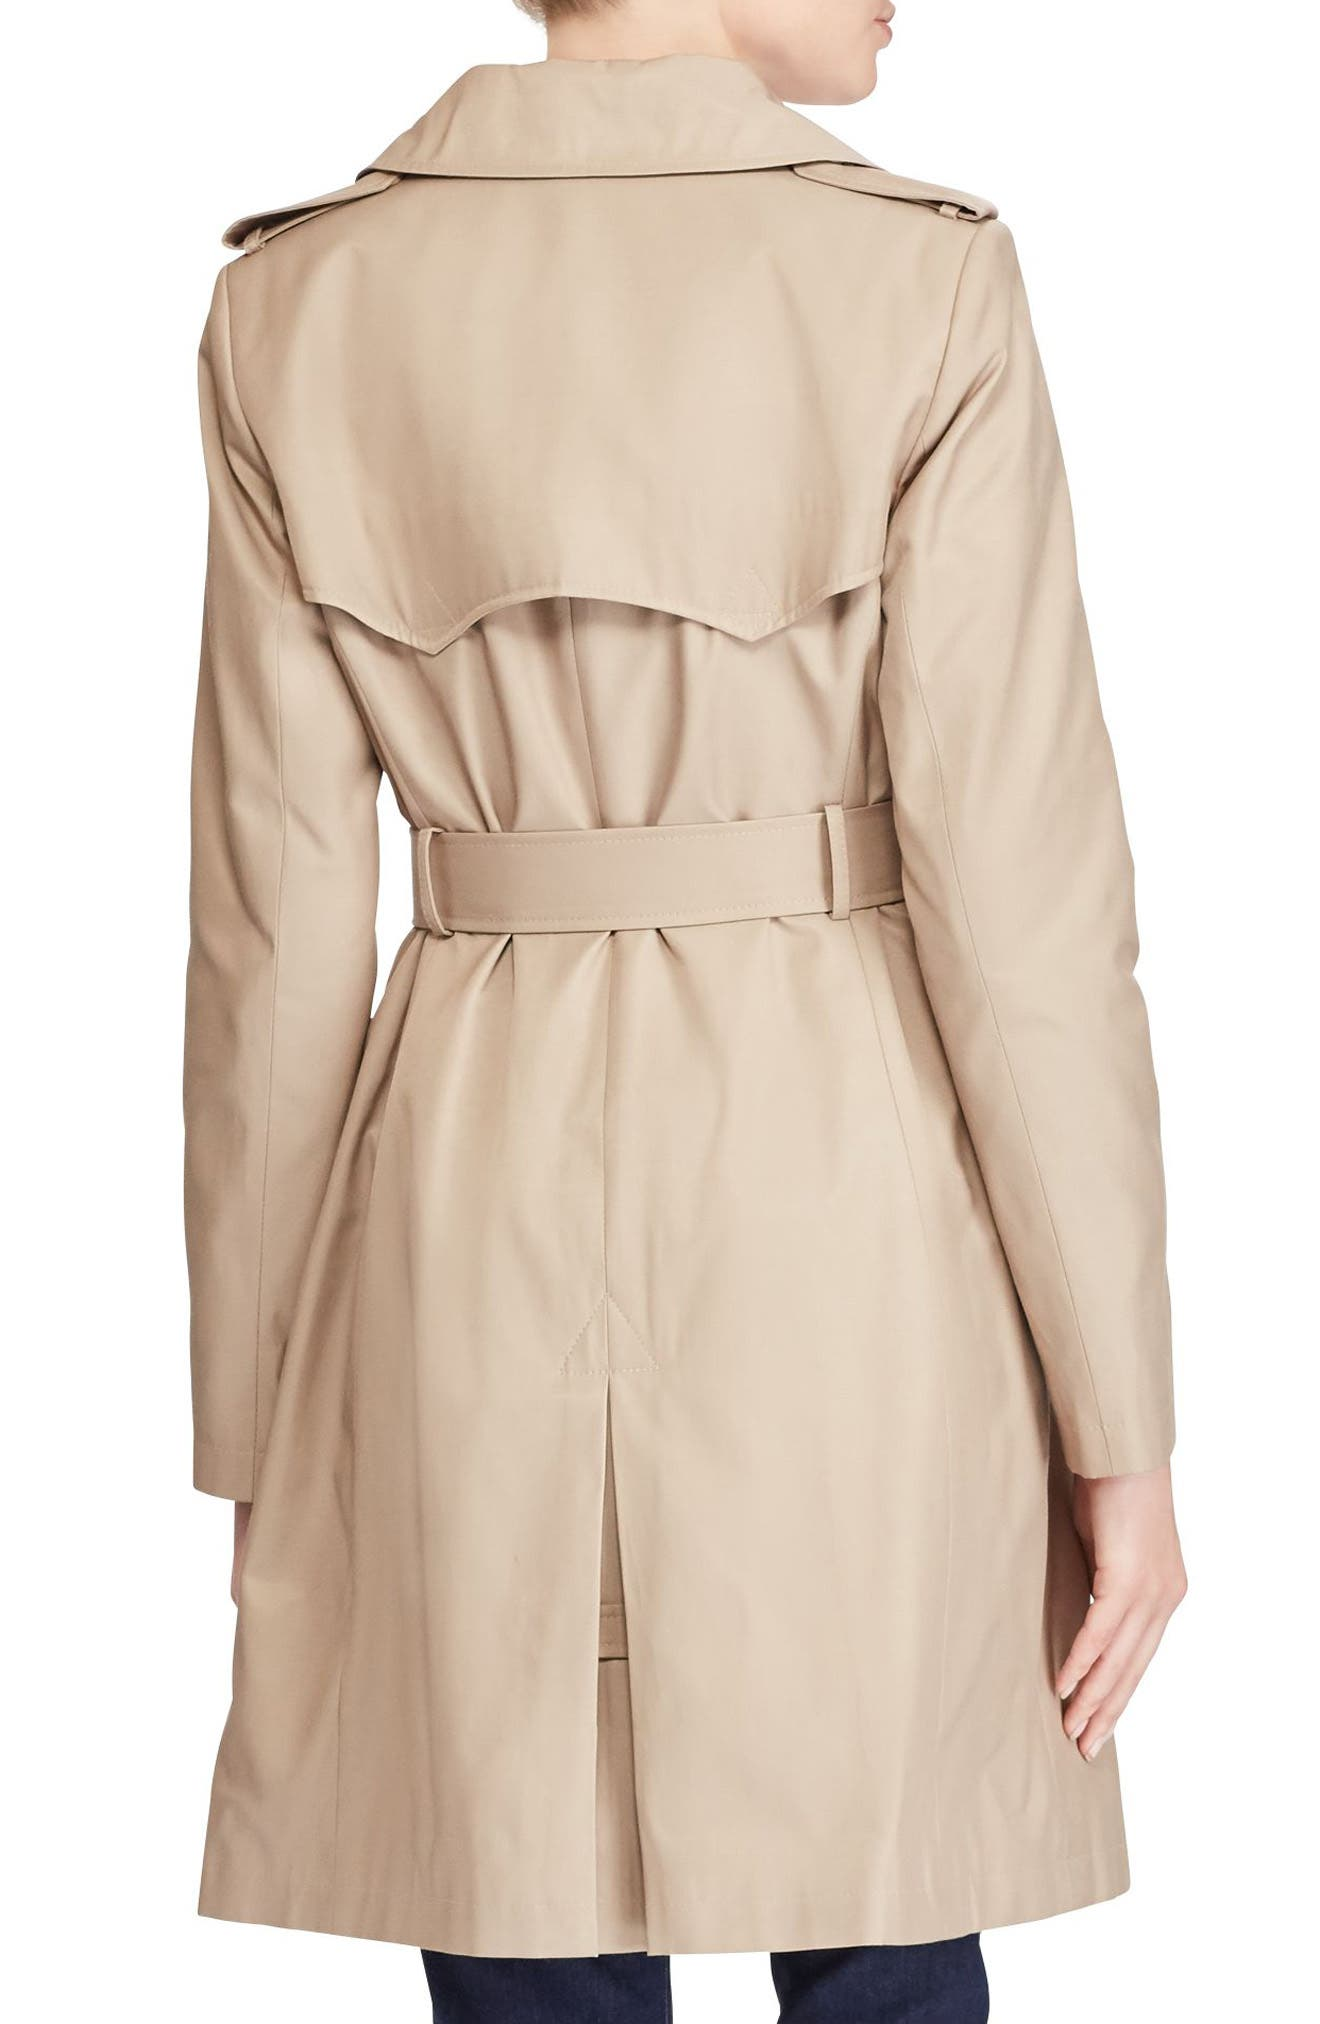 Double Breasted Trench Coat,                             Alternate thumbnail 3, color,                             Sand